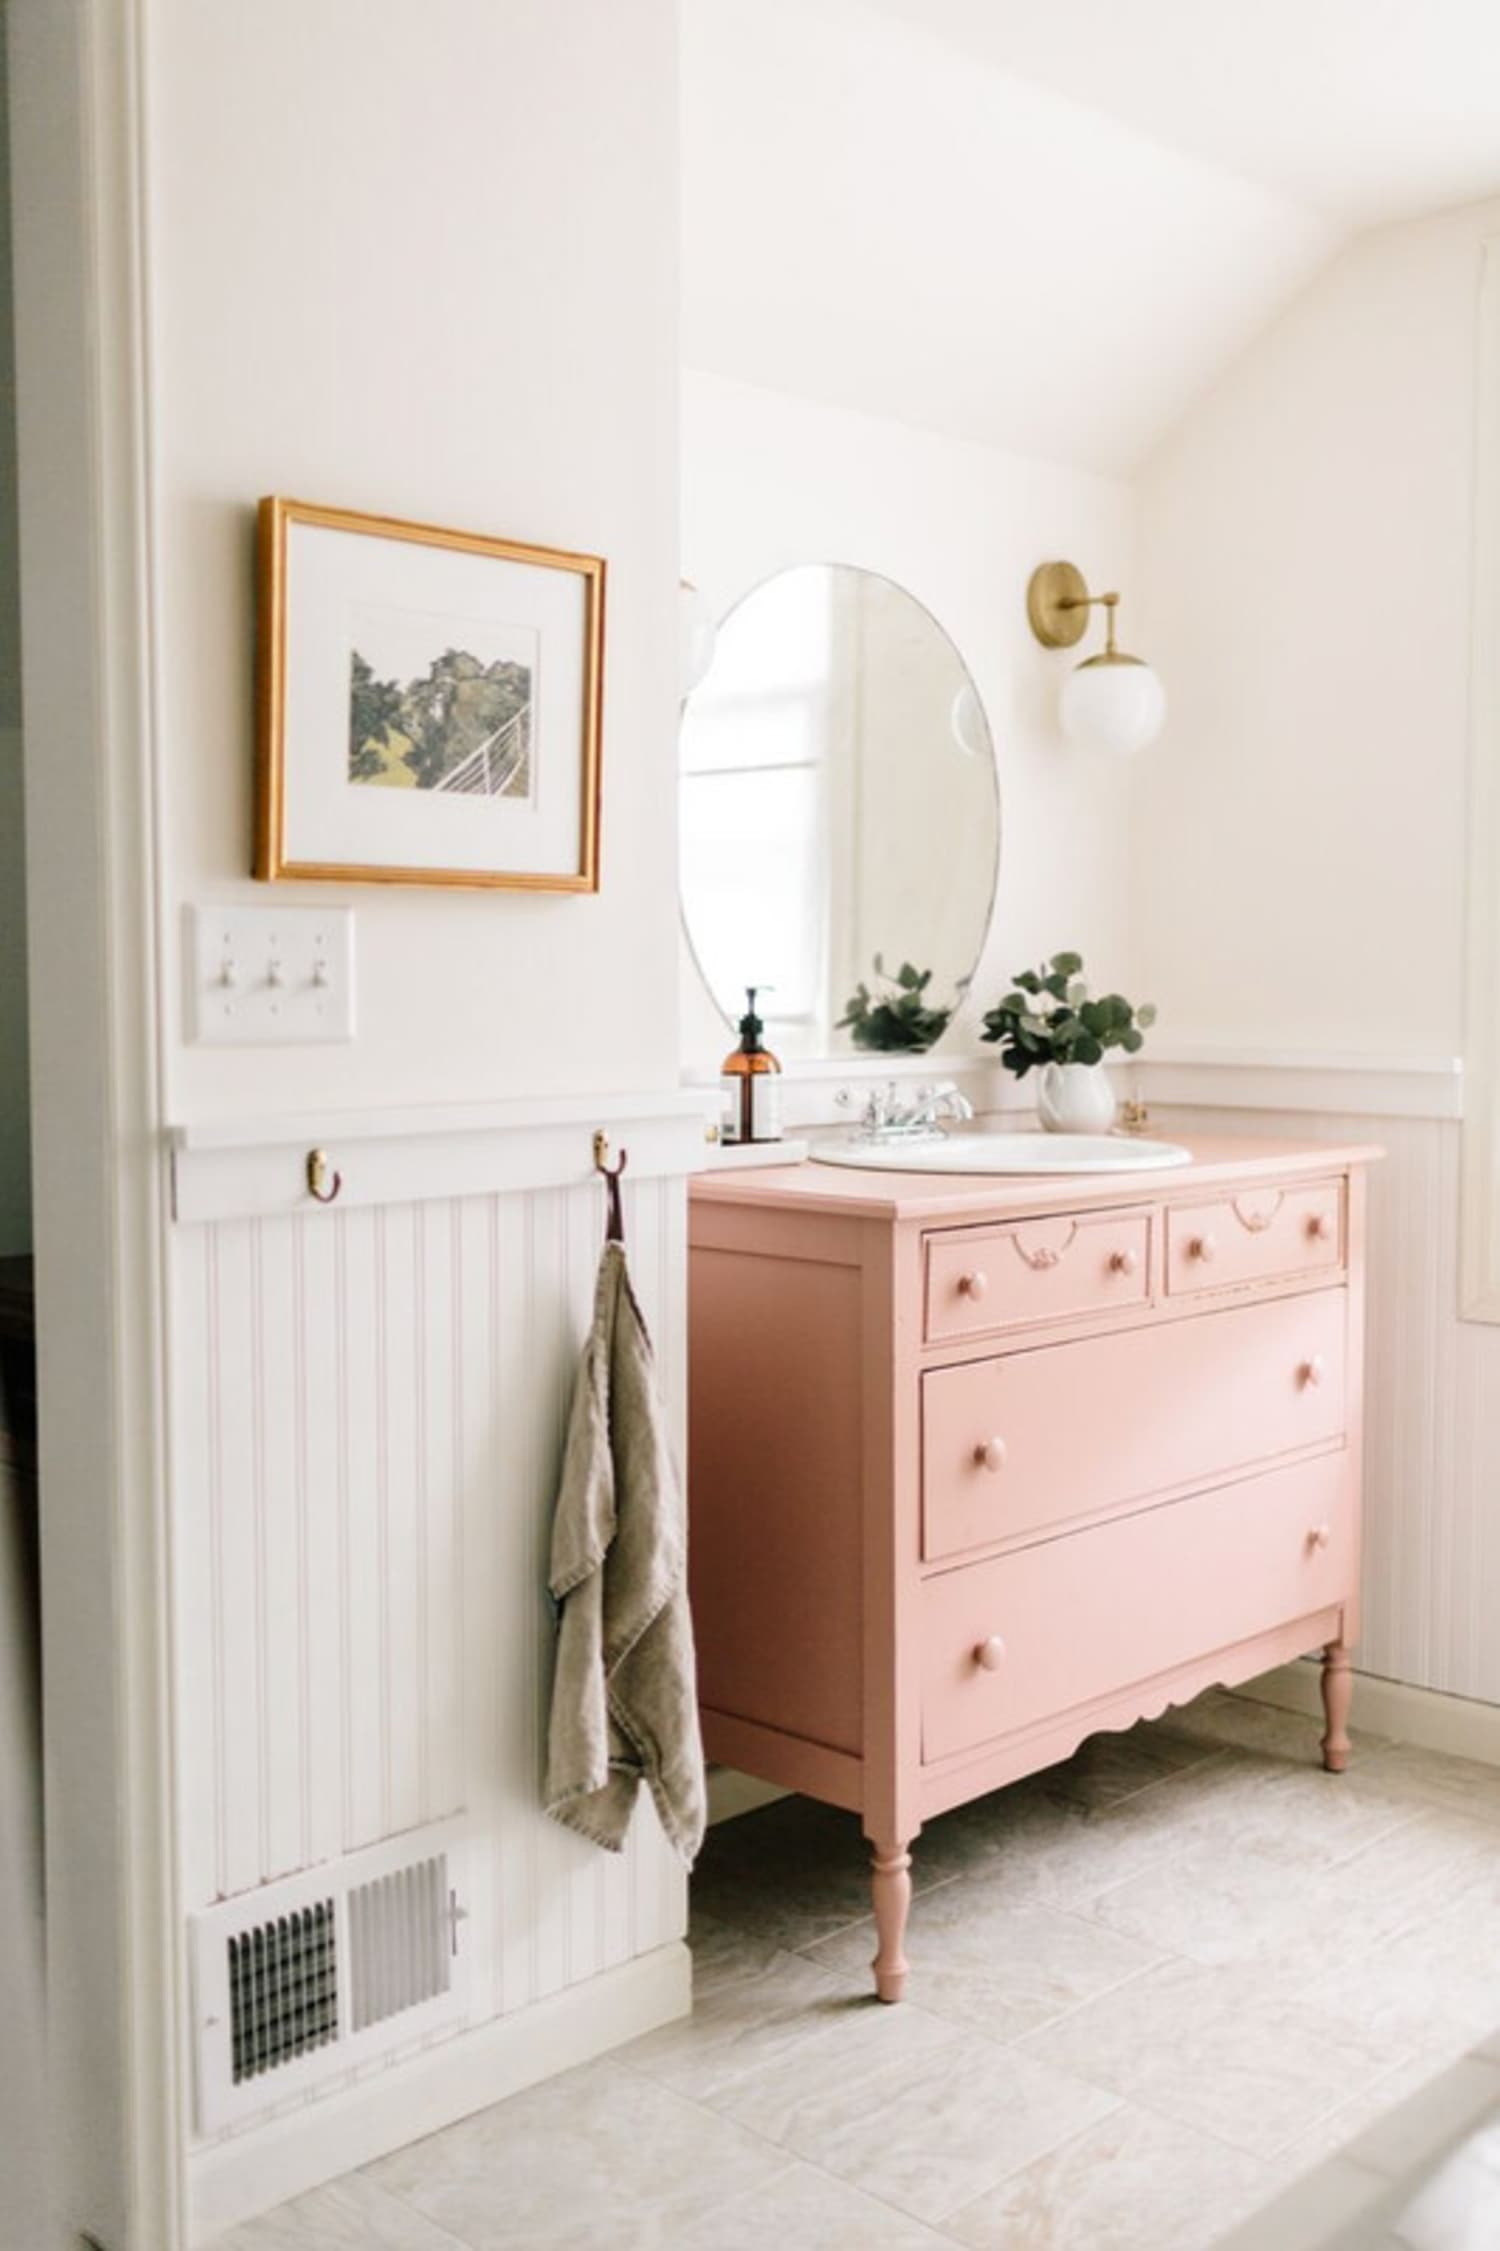 Decorating Ideas: 10 Bathrooms With Beadboard Wainscoting